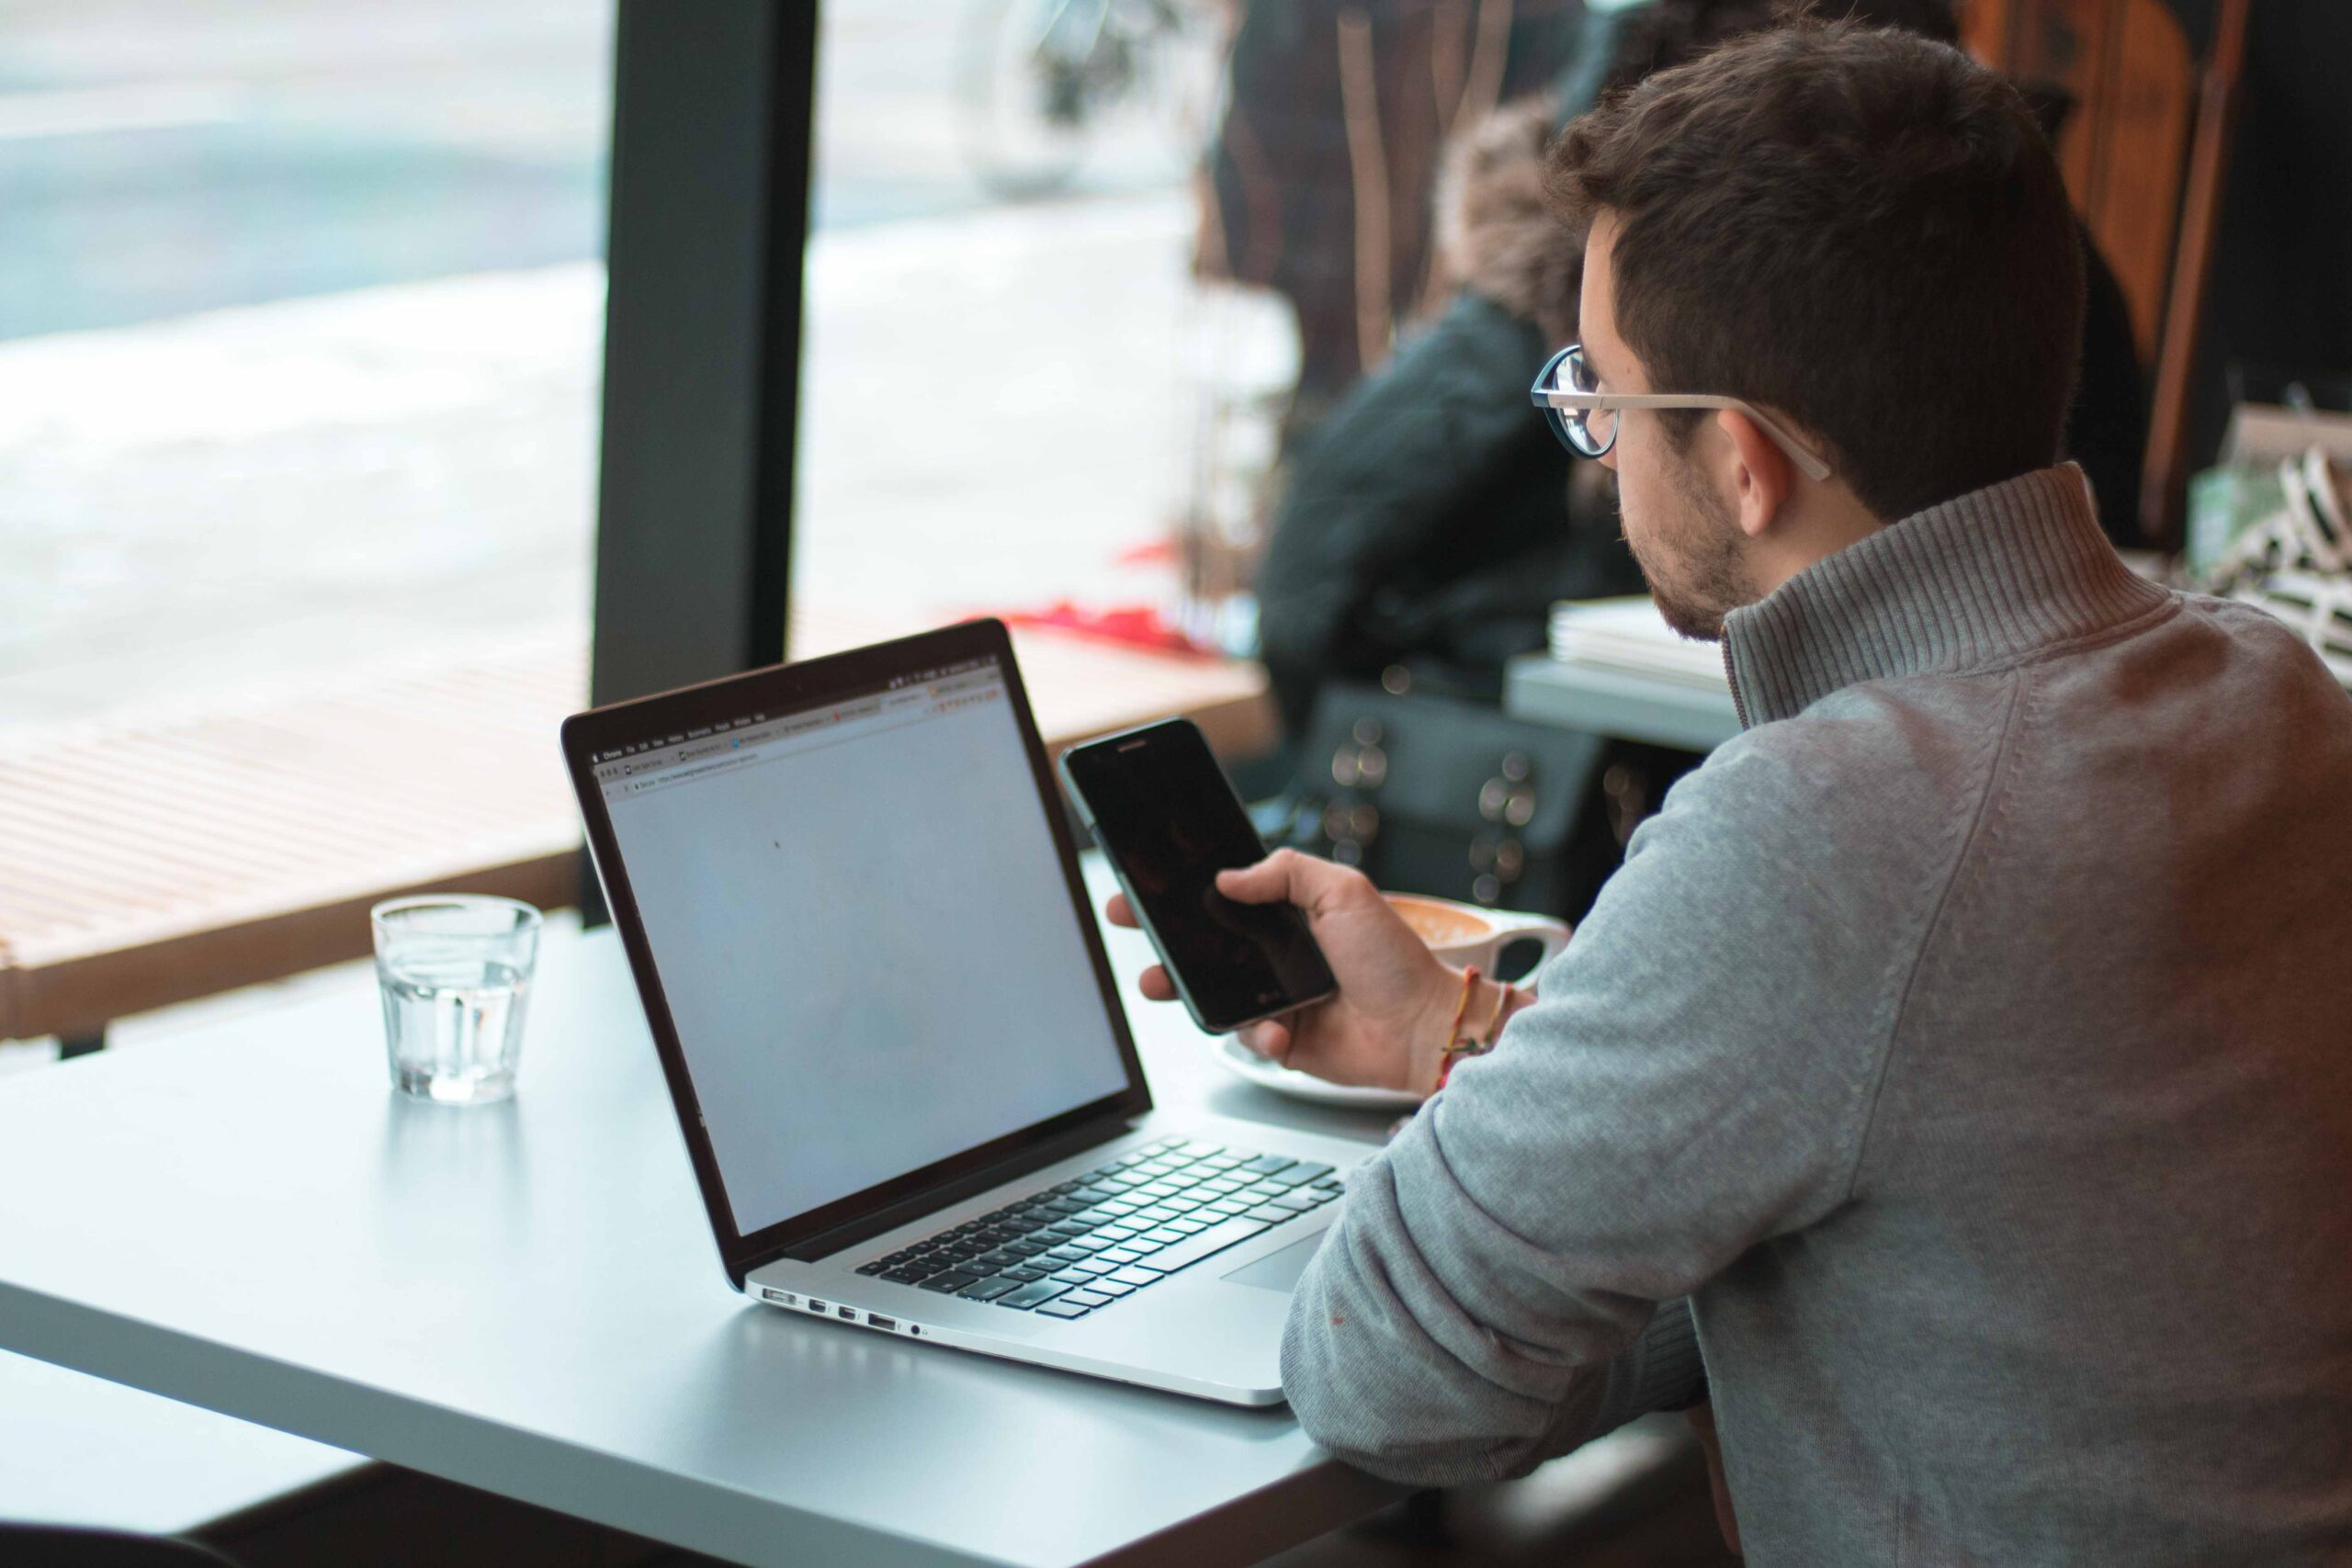 Laptops are hard to use without effecting the neck.